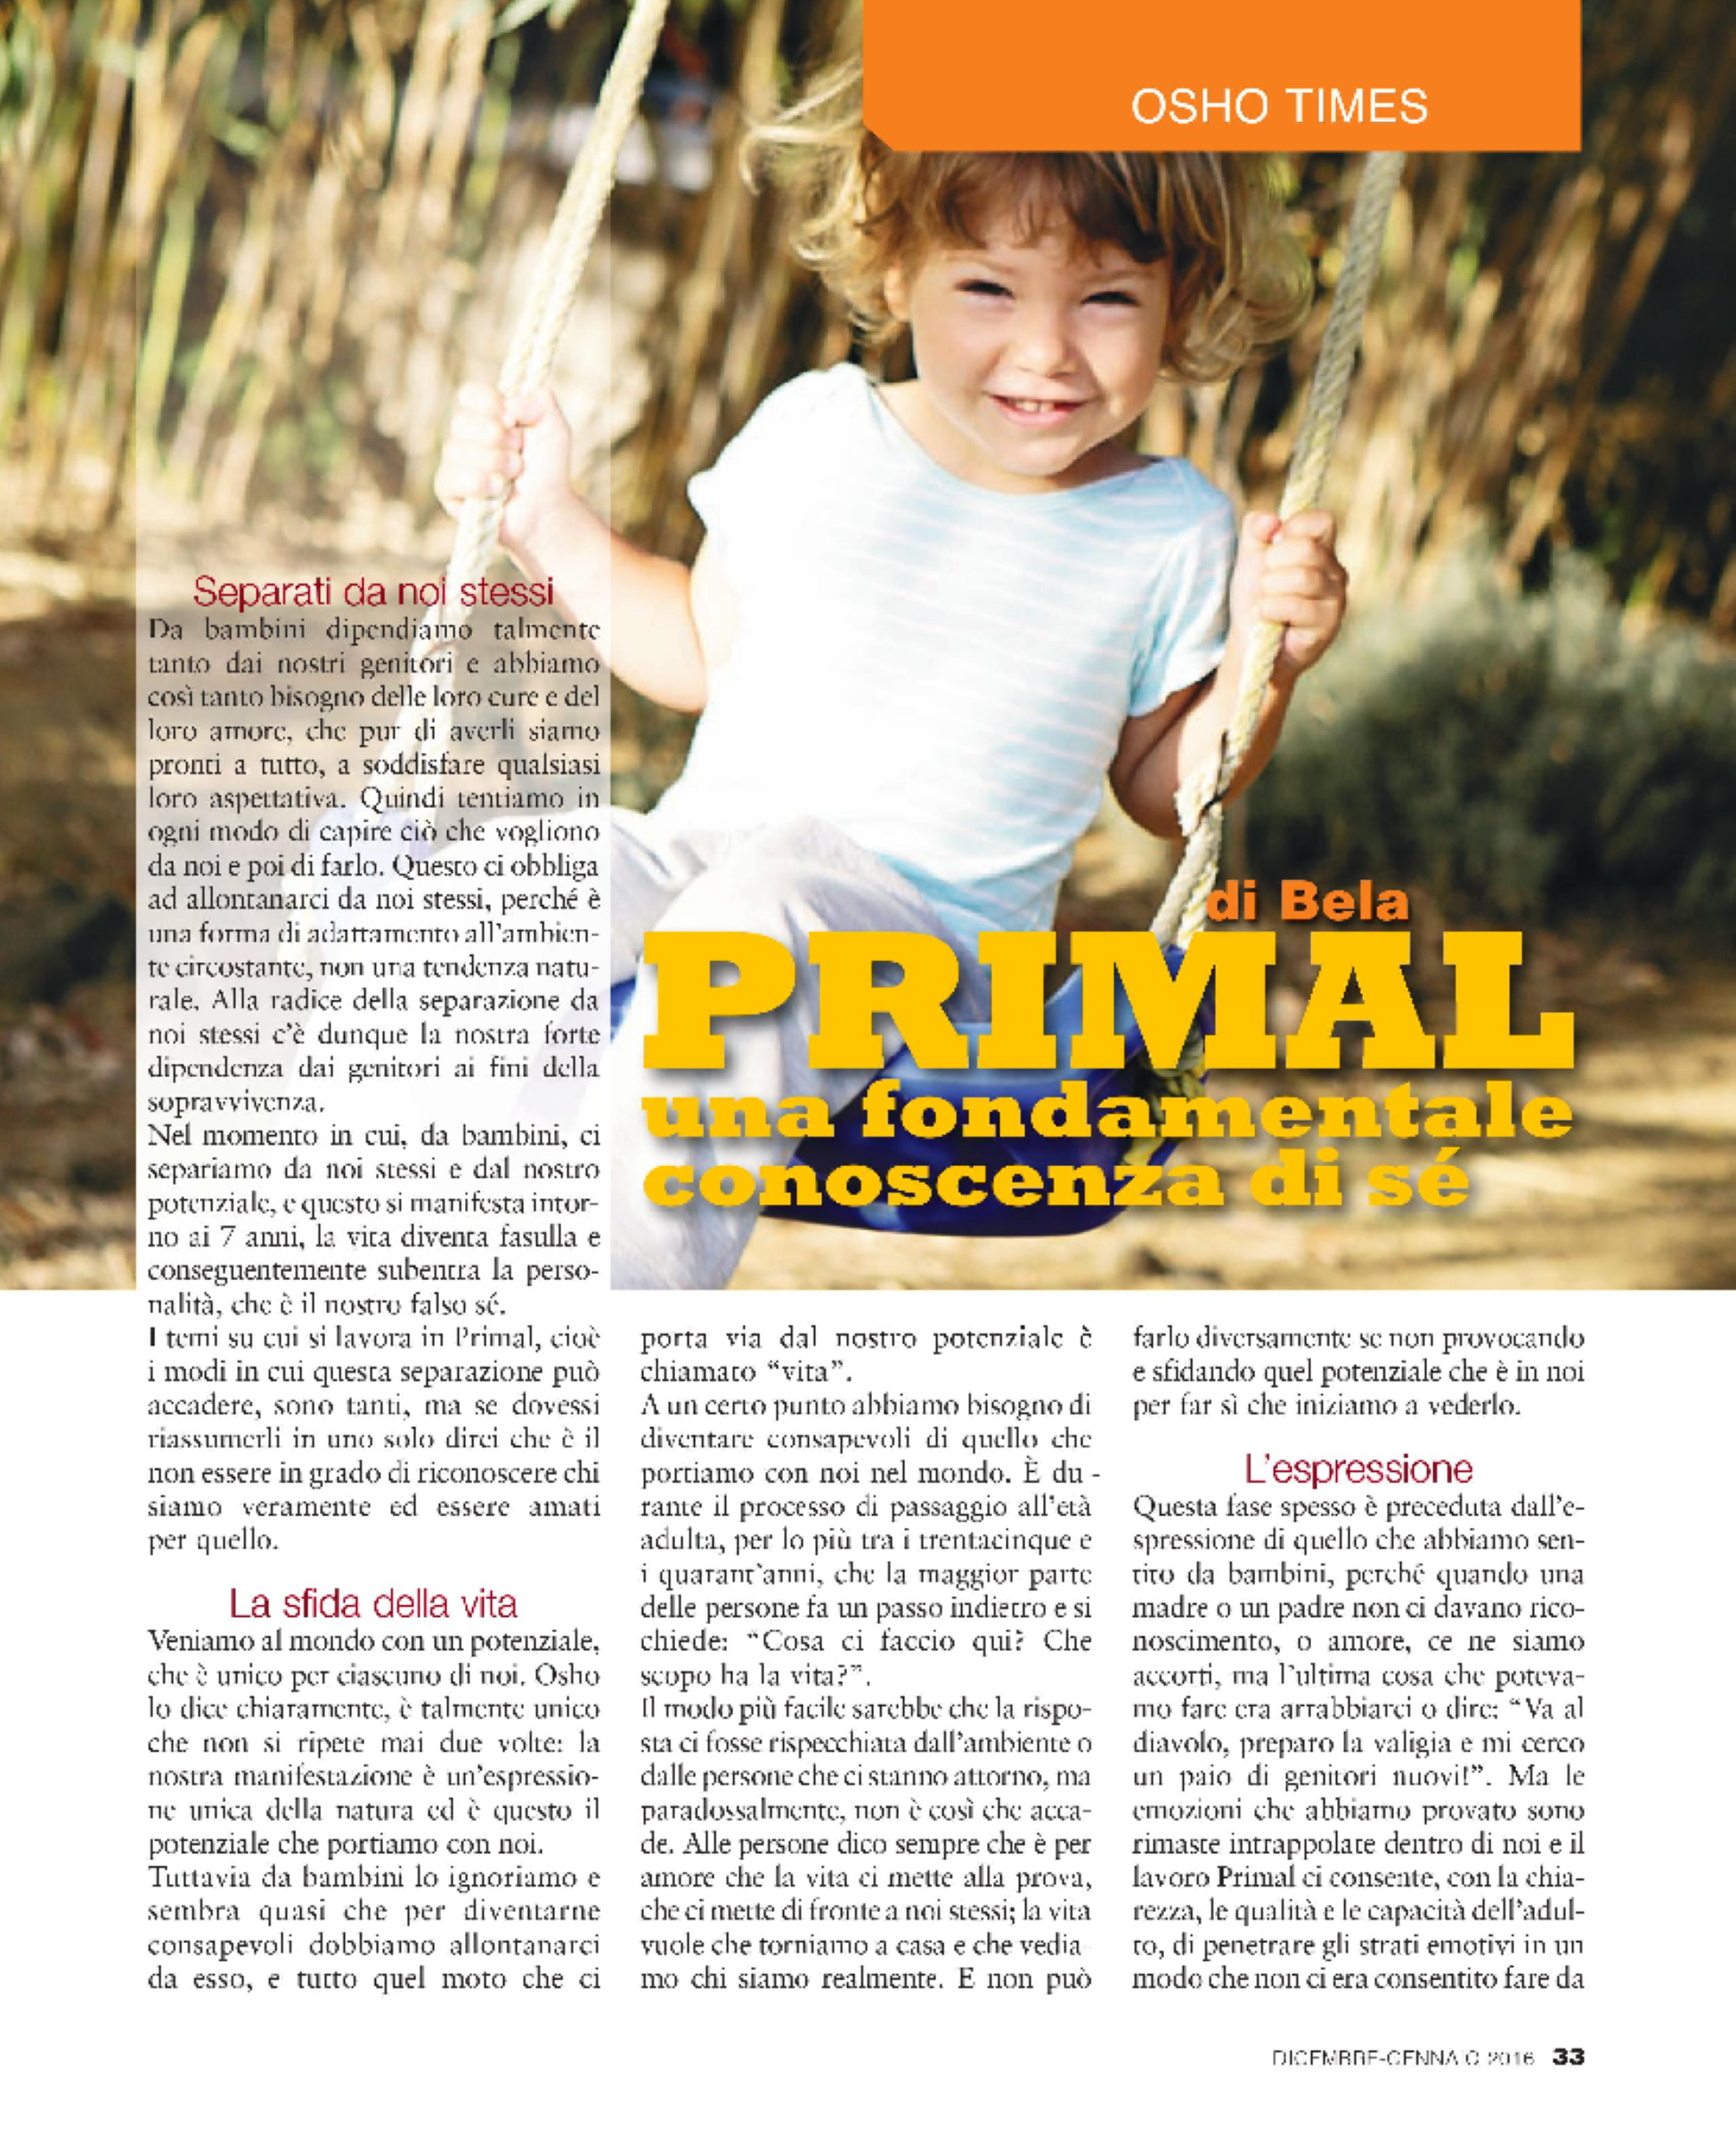 On Primal Therapy 1